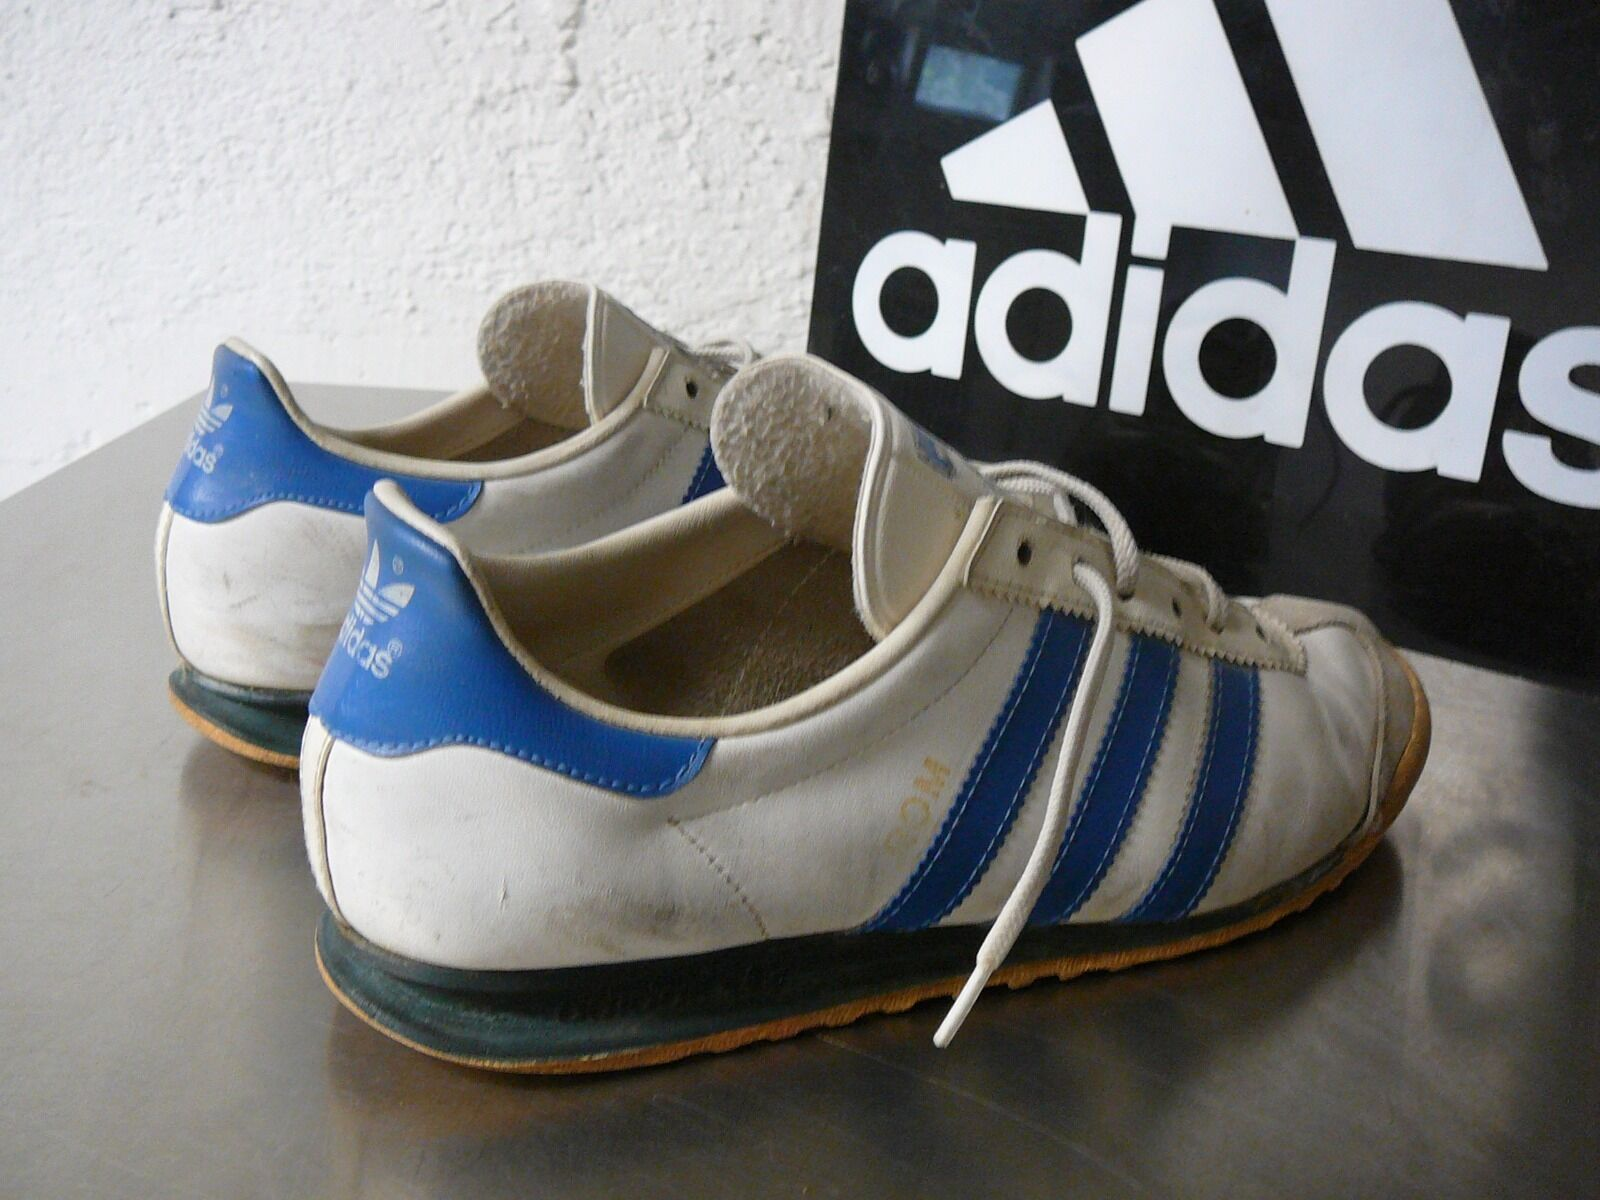 Adidas vintage Rom UK 5 Made in in in West-Germany Trainers vintage no retro 445e82